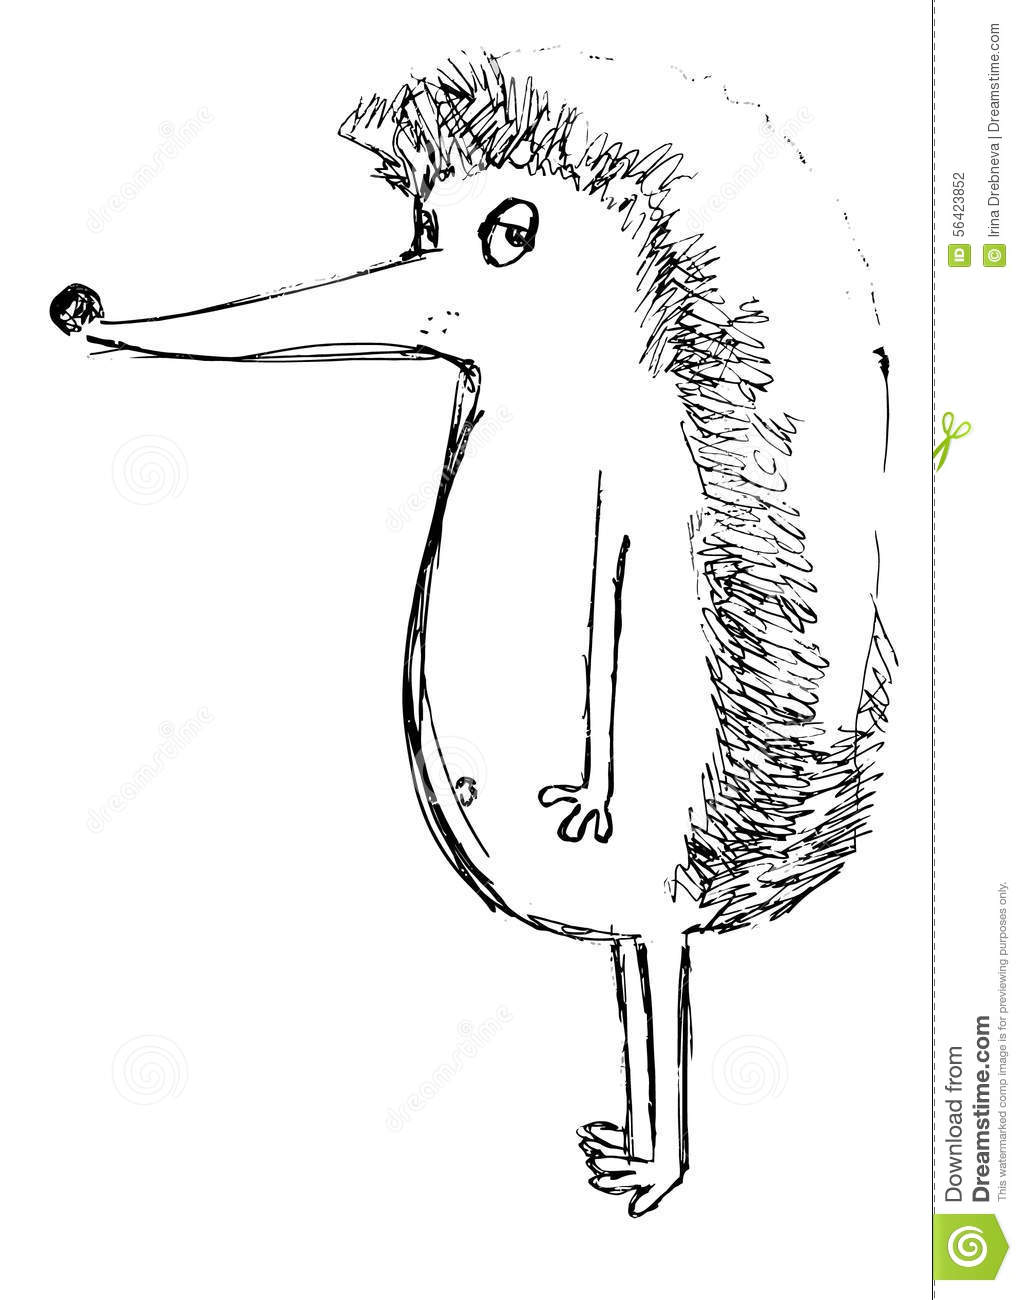 The Outline Of A Hedgehog On A White Background Stock